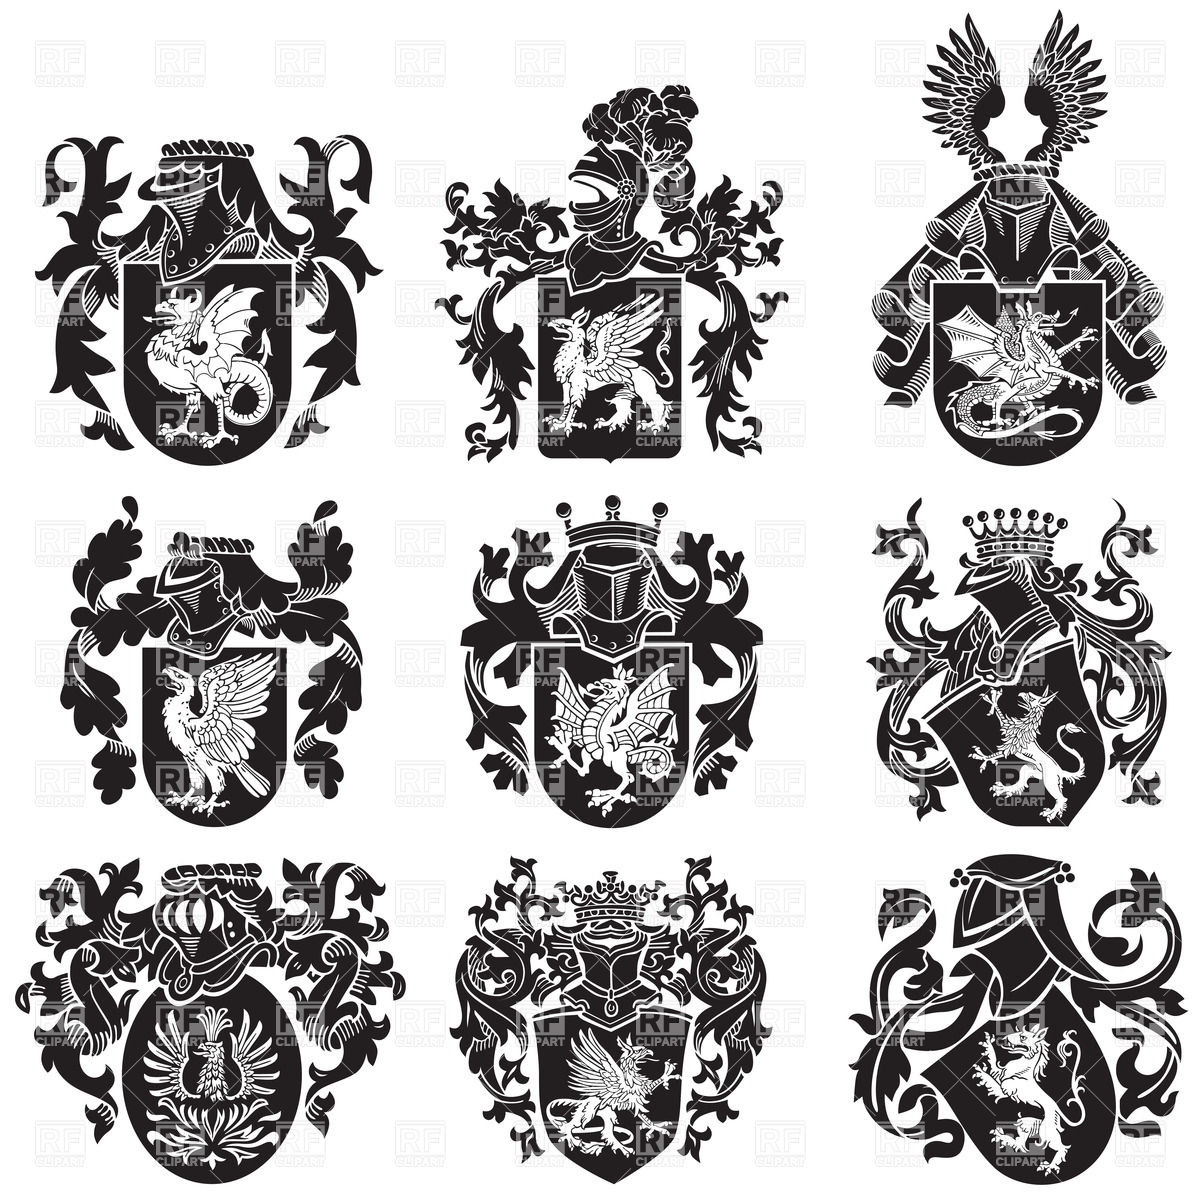 Animal Coat Of Arms Clipart.